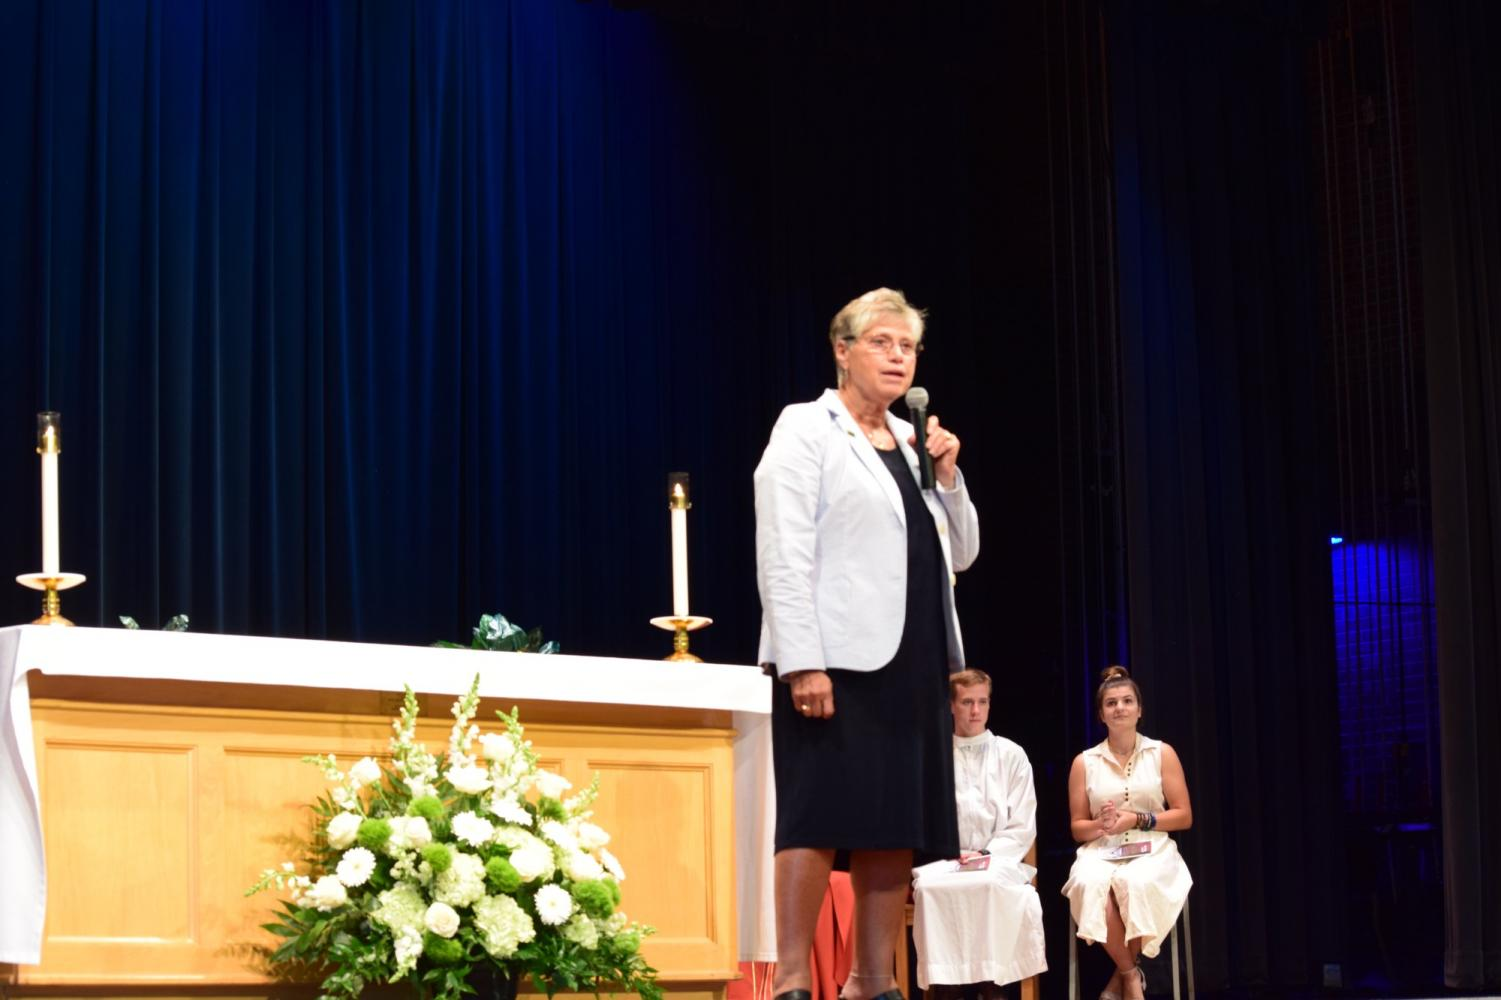 Sr. Mary Persico, IHM, Ed.D gave a speech touching on topics like empathy, kindness and love at Marywood University's 104th Opening Liturgy. Photo credit: Briana Ryan